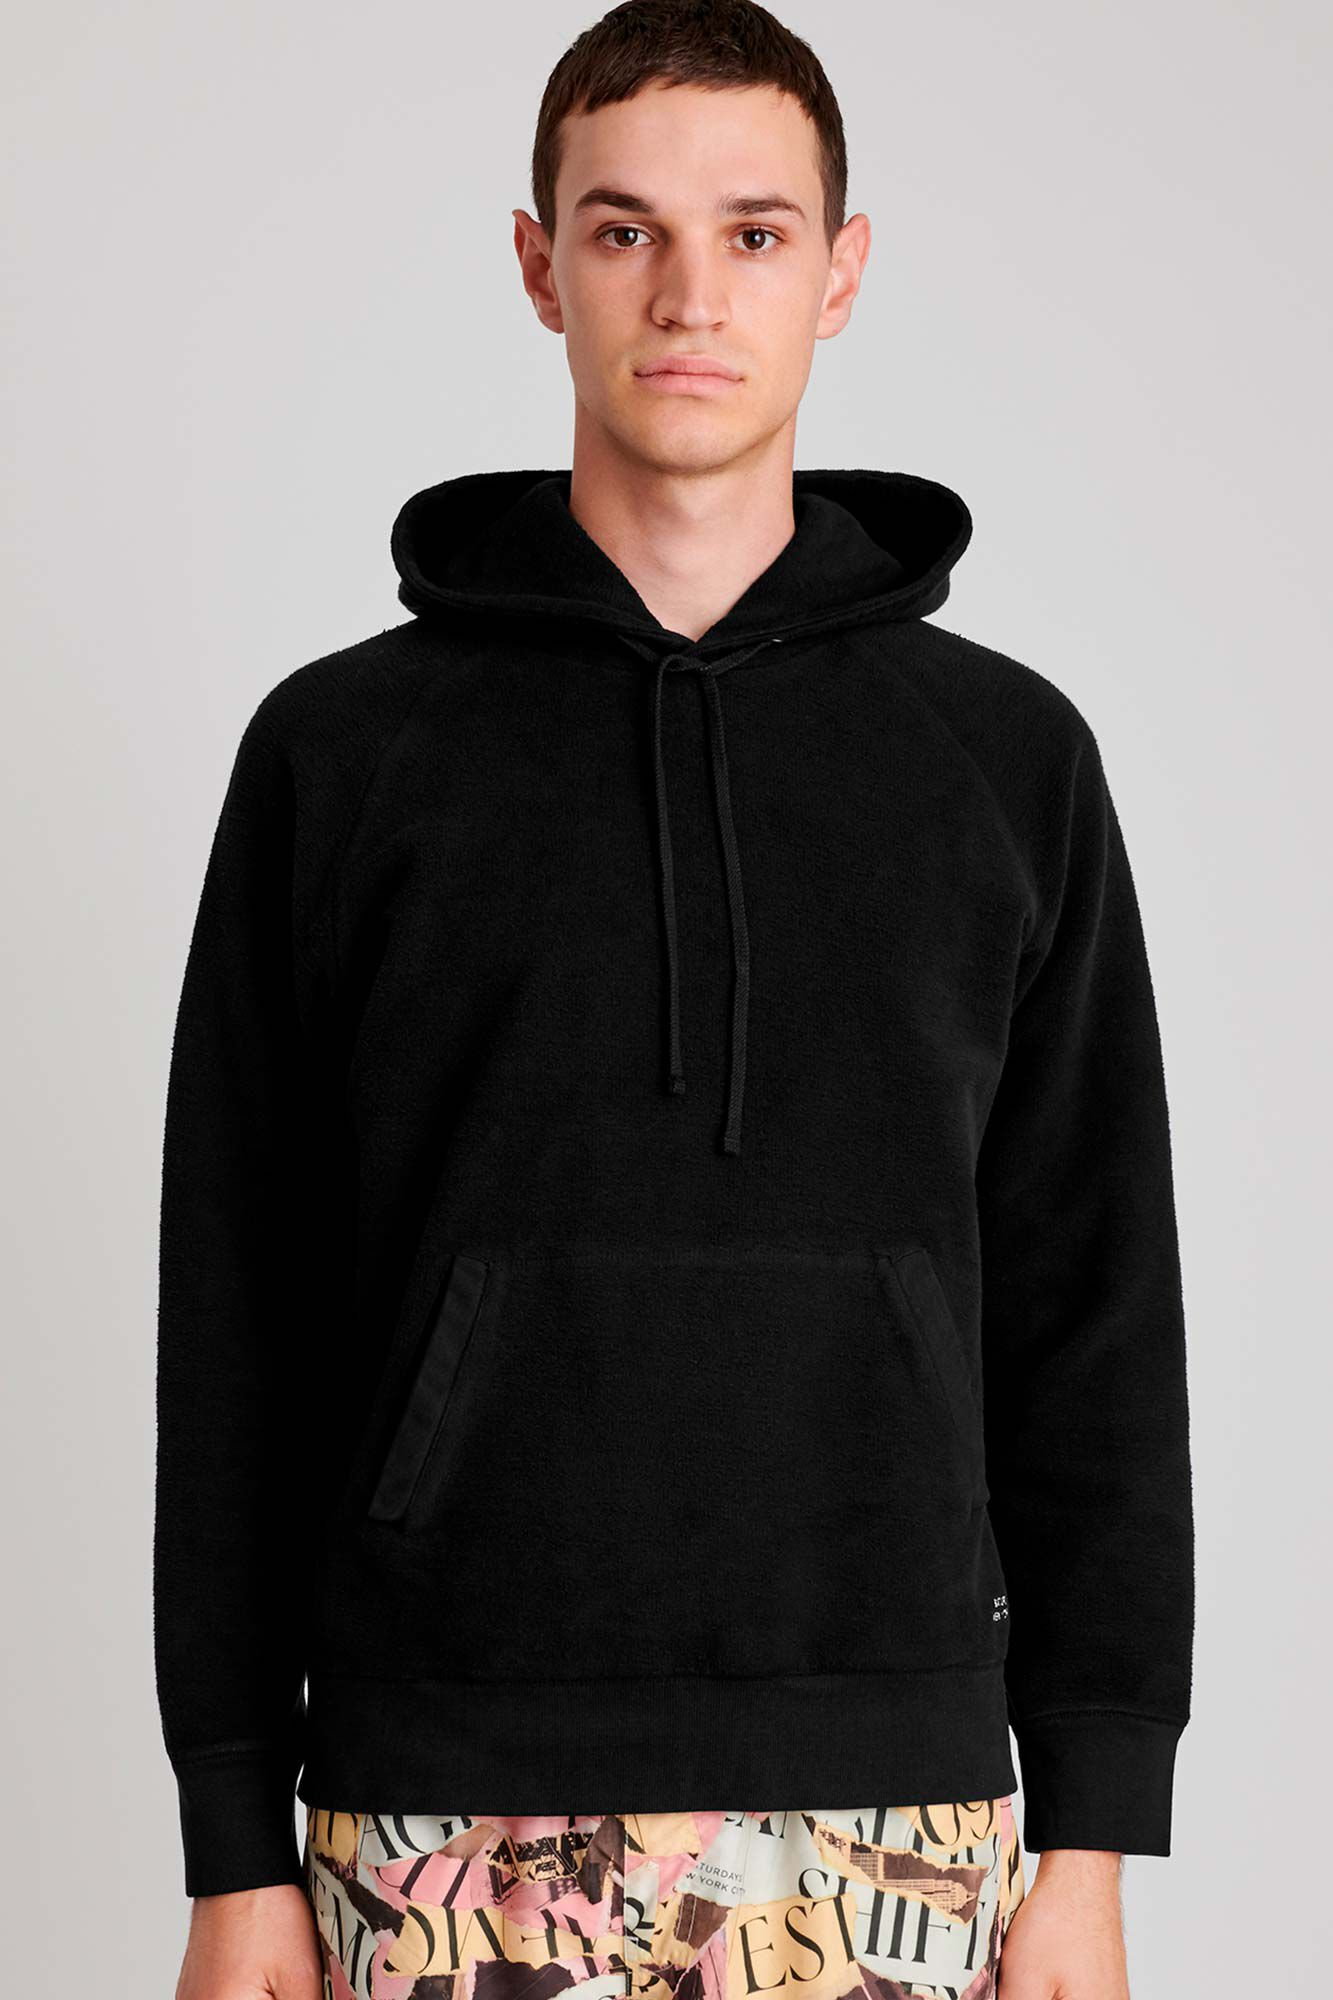 Ditch hooded